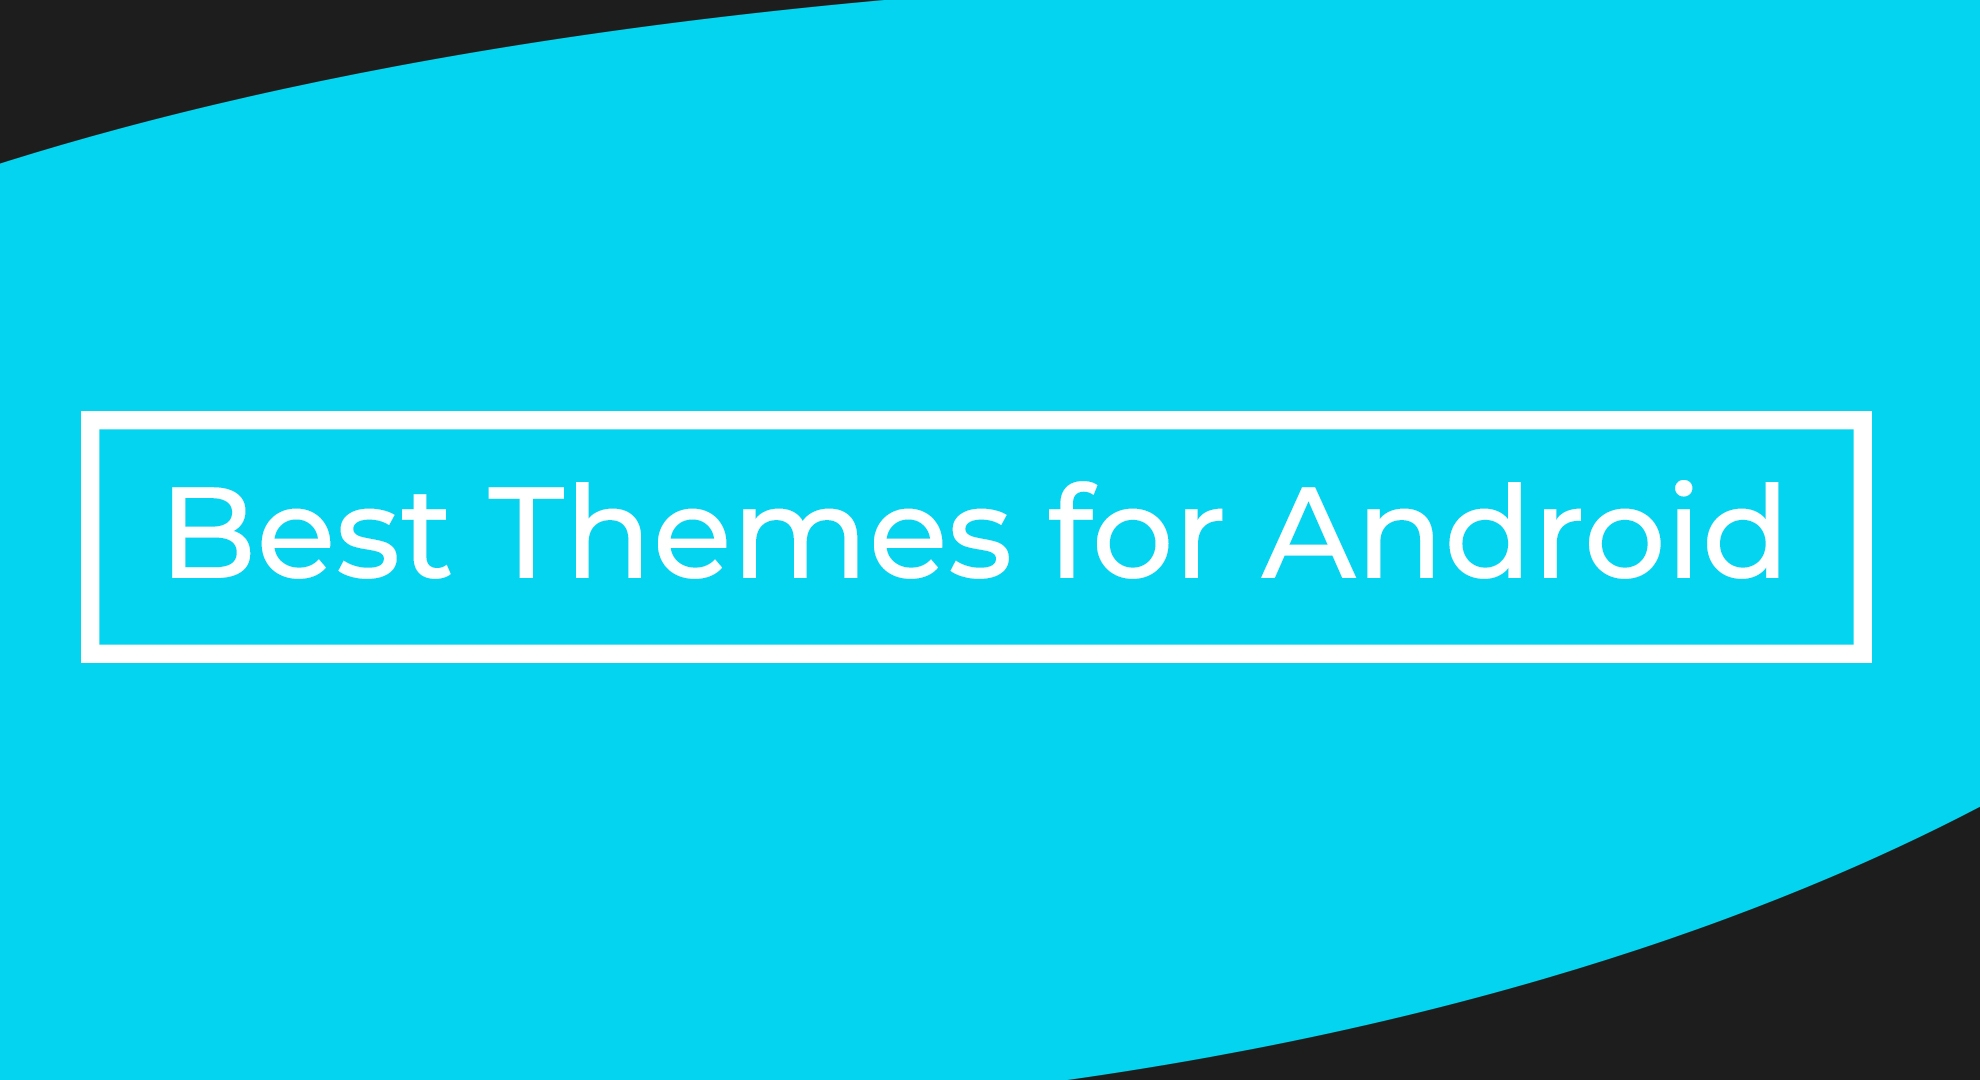 13 Best Themes For Android Free 2020